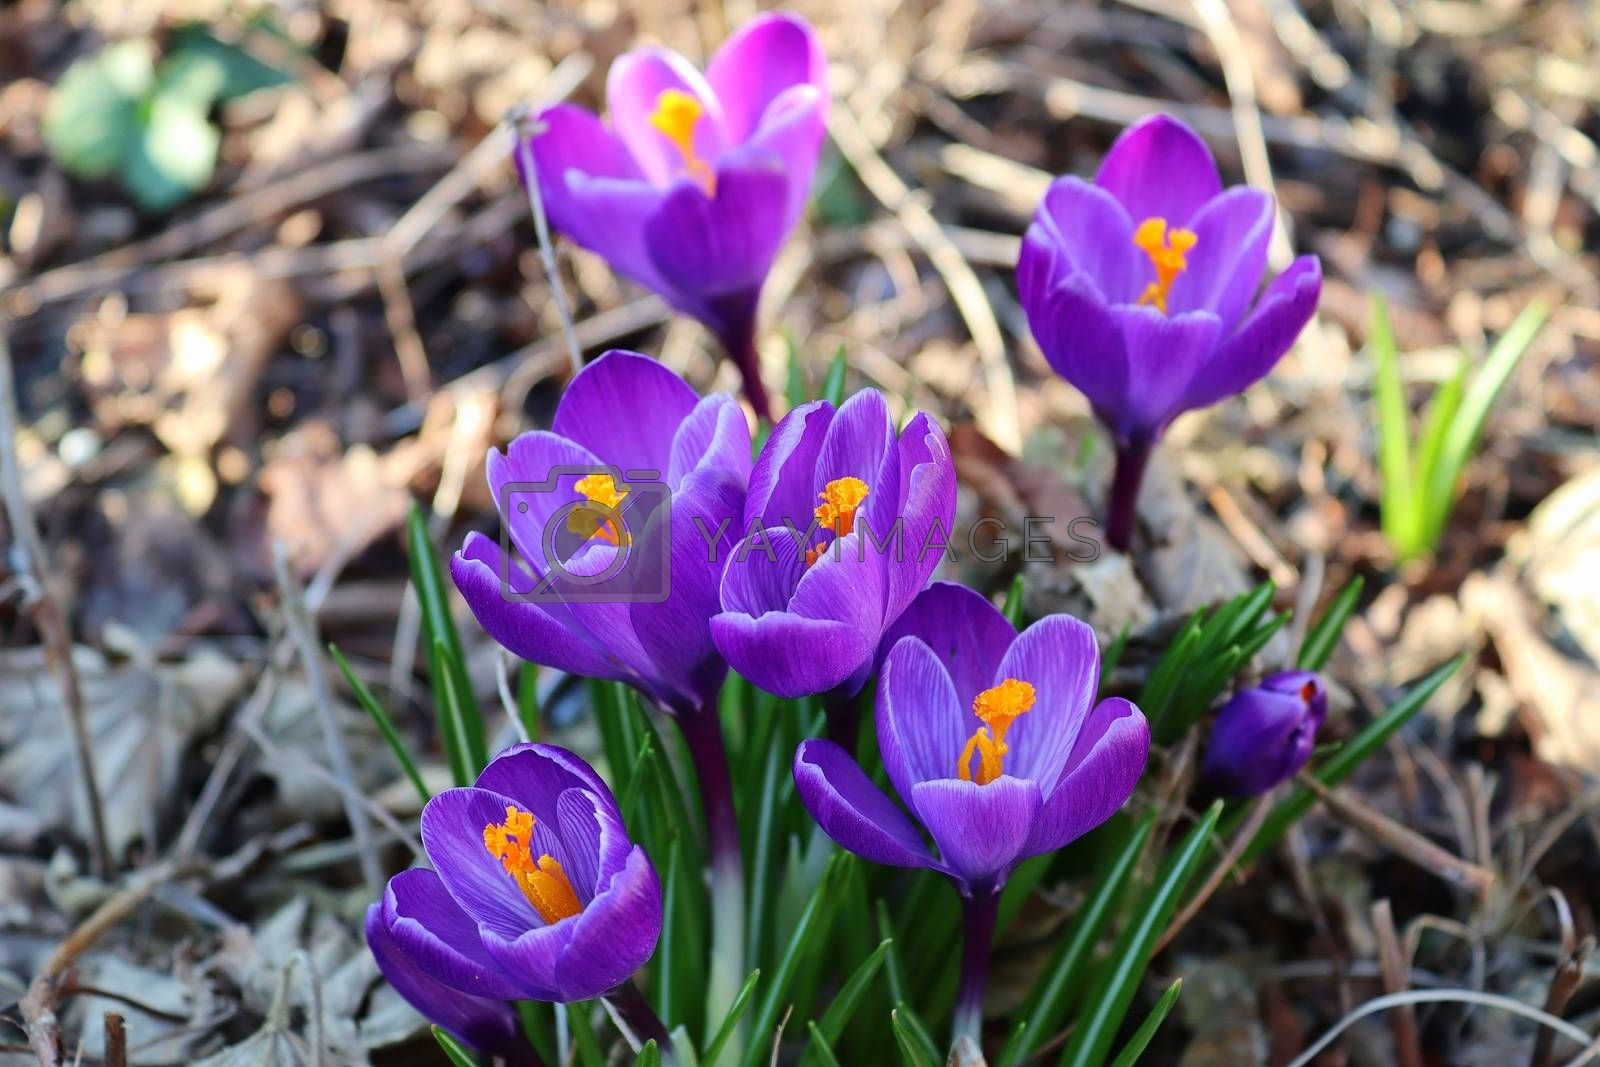 View at magic blooming spring flowers crocus sativus. Purple cro by MP_foto71